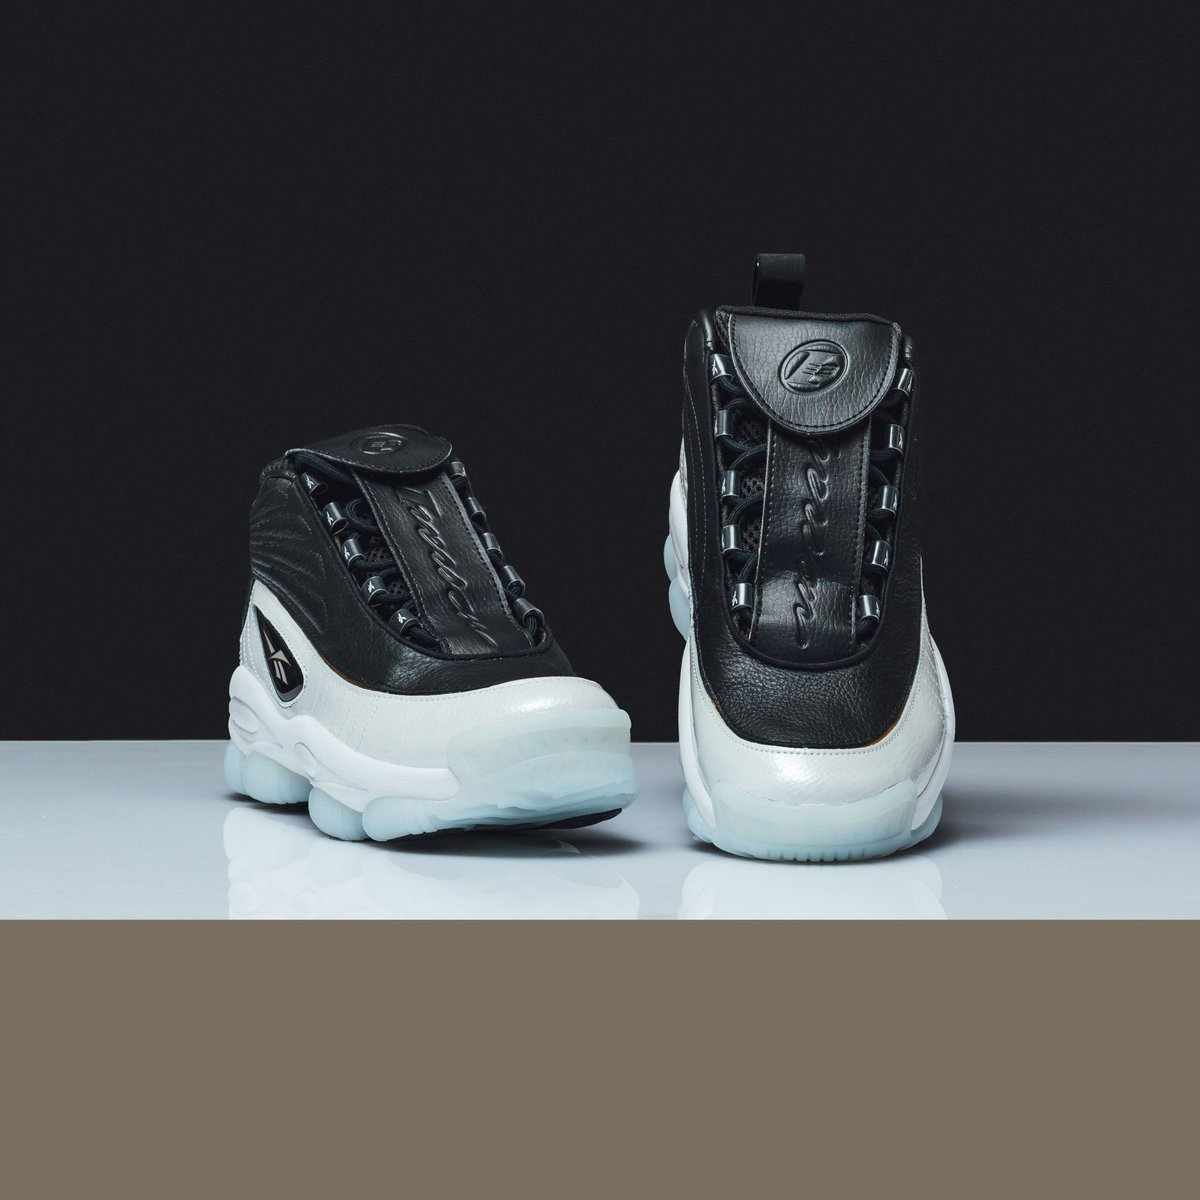 26e99f018add17  newarrival Reebok Iverson Legacy - Black White Reebok Red Brass SHOP now    http   bit.ly 2AemYf1 pic.twitter.com Tw7LpIBVEf